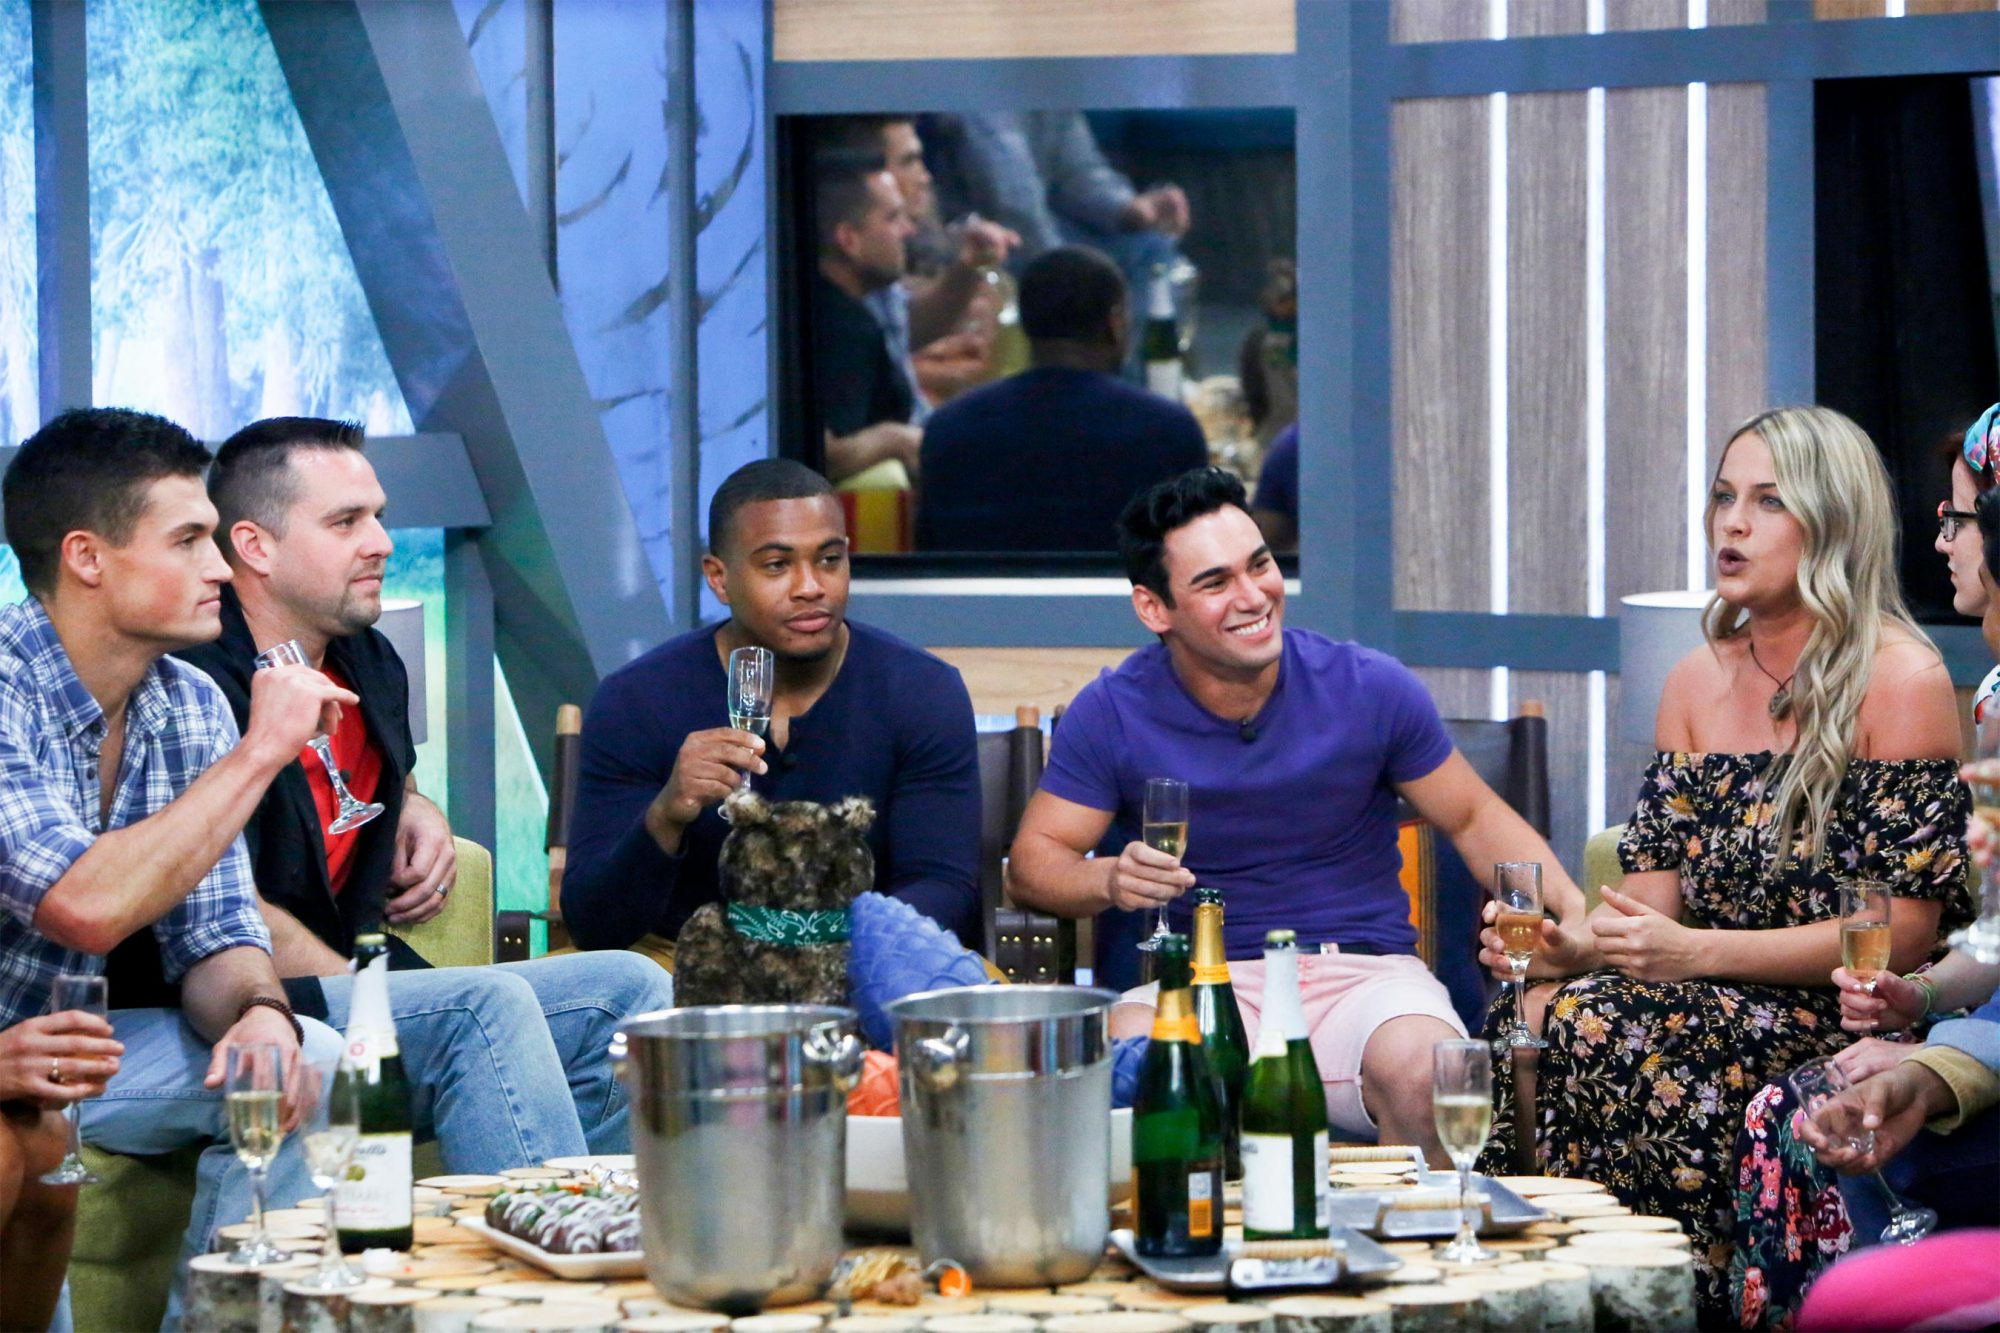 Jackson Michie, Sam Smith, David Alexander, Tommy Bracco, and Christie Murphy in the Big Brother House. BIG BROTHERÕs two-night premiere event airing Tuesday, June 25 and Wednesday, June 26 (8:00 Ð 9:00 PM, ET/PT), on the CBS Television Network. Following the two-night premiere, BIG BROTHER will be broadcast Sunday, June 30 (8:00-9:00 PM, ET/PT) and Tuesday, July 2 (8:00-9:00 PM, ET/PT). The first live eviction airs Wednesday, July 3. As of Wednesday, July 10, the show moves to its regular schedule of Wednesdays (9:00-10:00 PM, ET/PT), Thursdays, featuring the live evictions (9:00-10:00 PM, LIVE ET/Delayed PT) and Sundays (8:00-9:00 PM, ET/PT). Reserved Photo: Monty Brinton/CBS ©2018 CBS Broadcasting, Inc. All Rights Reserved